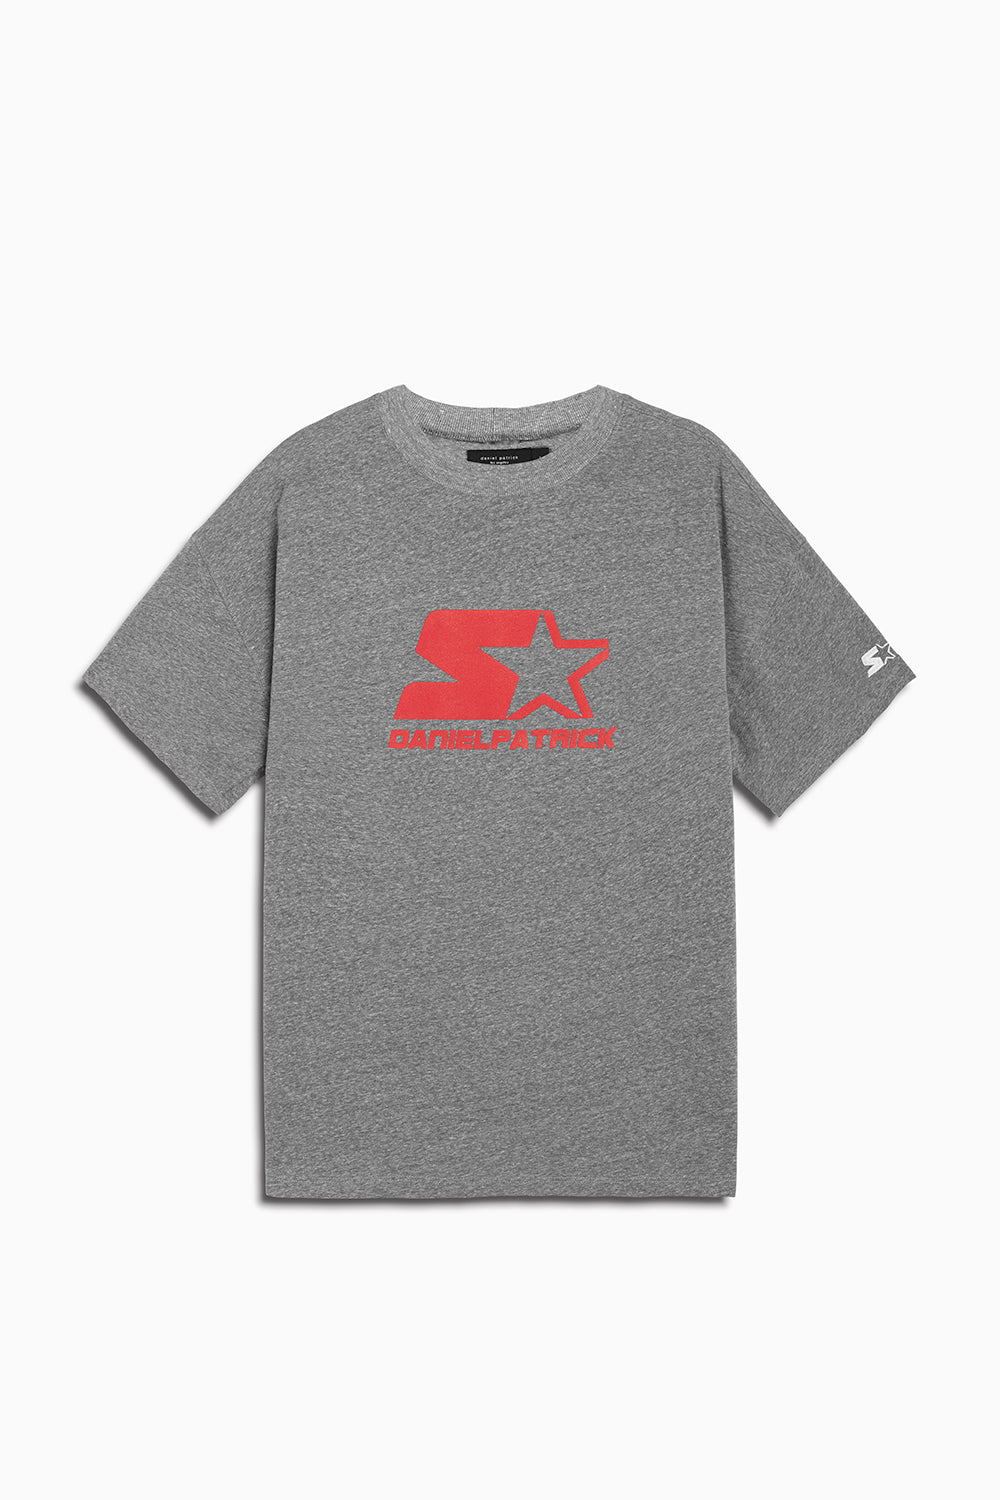 dp starter logo tee in heather grey/red by daniel patrick x starter